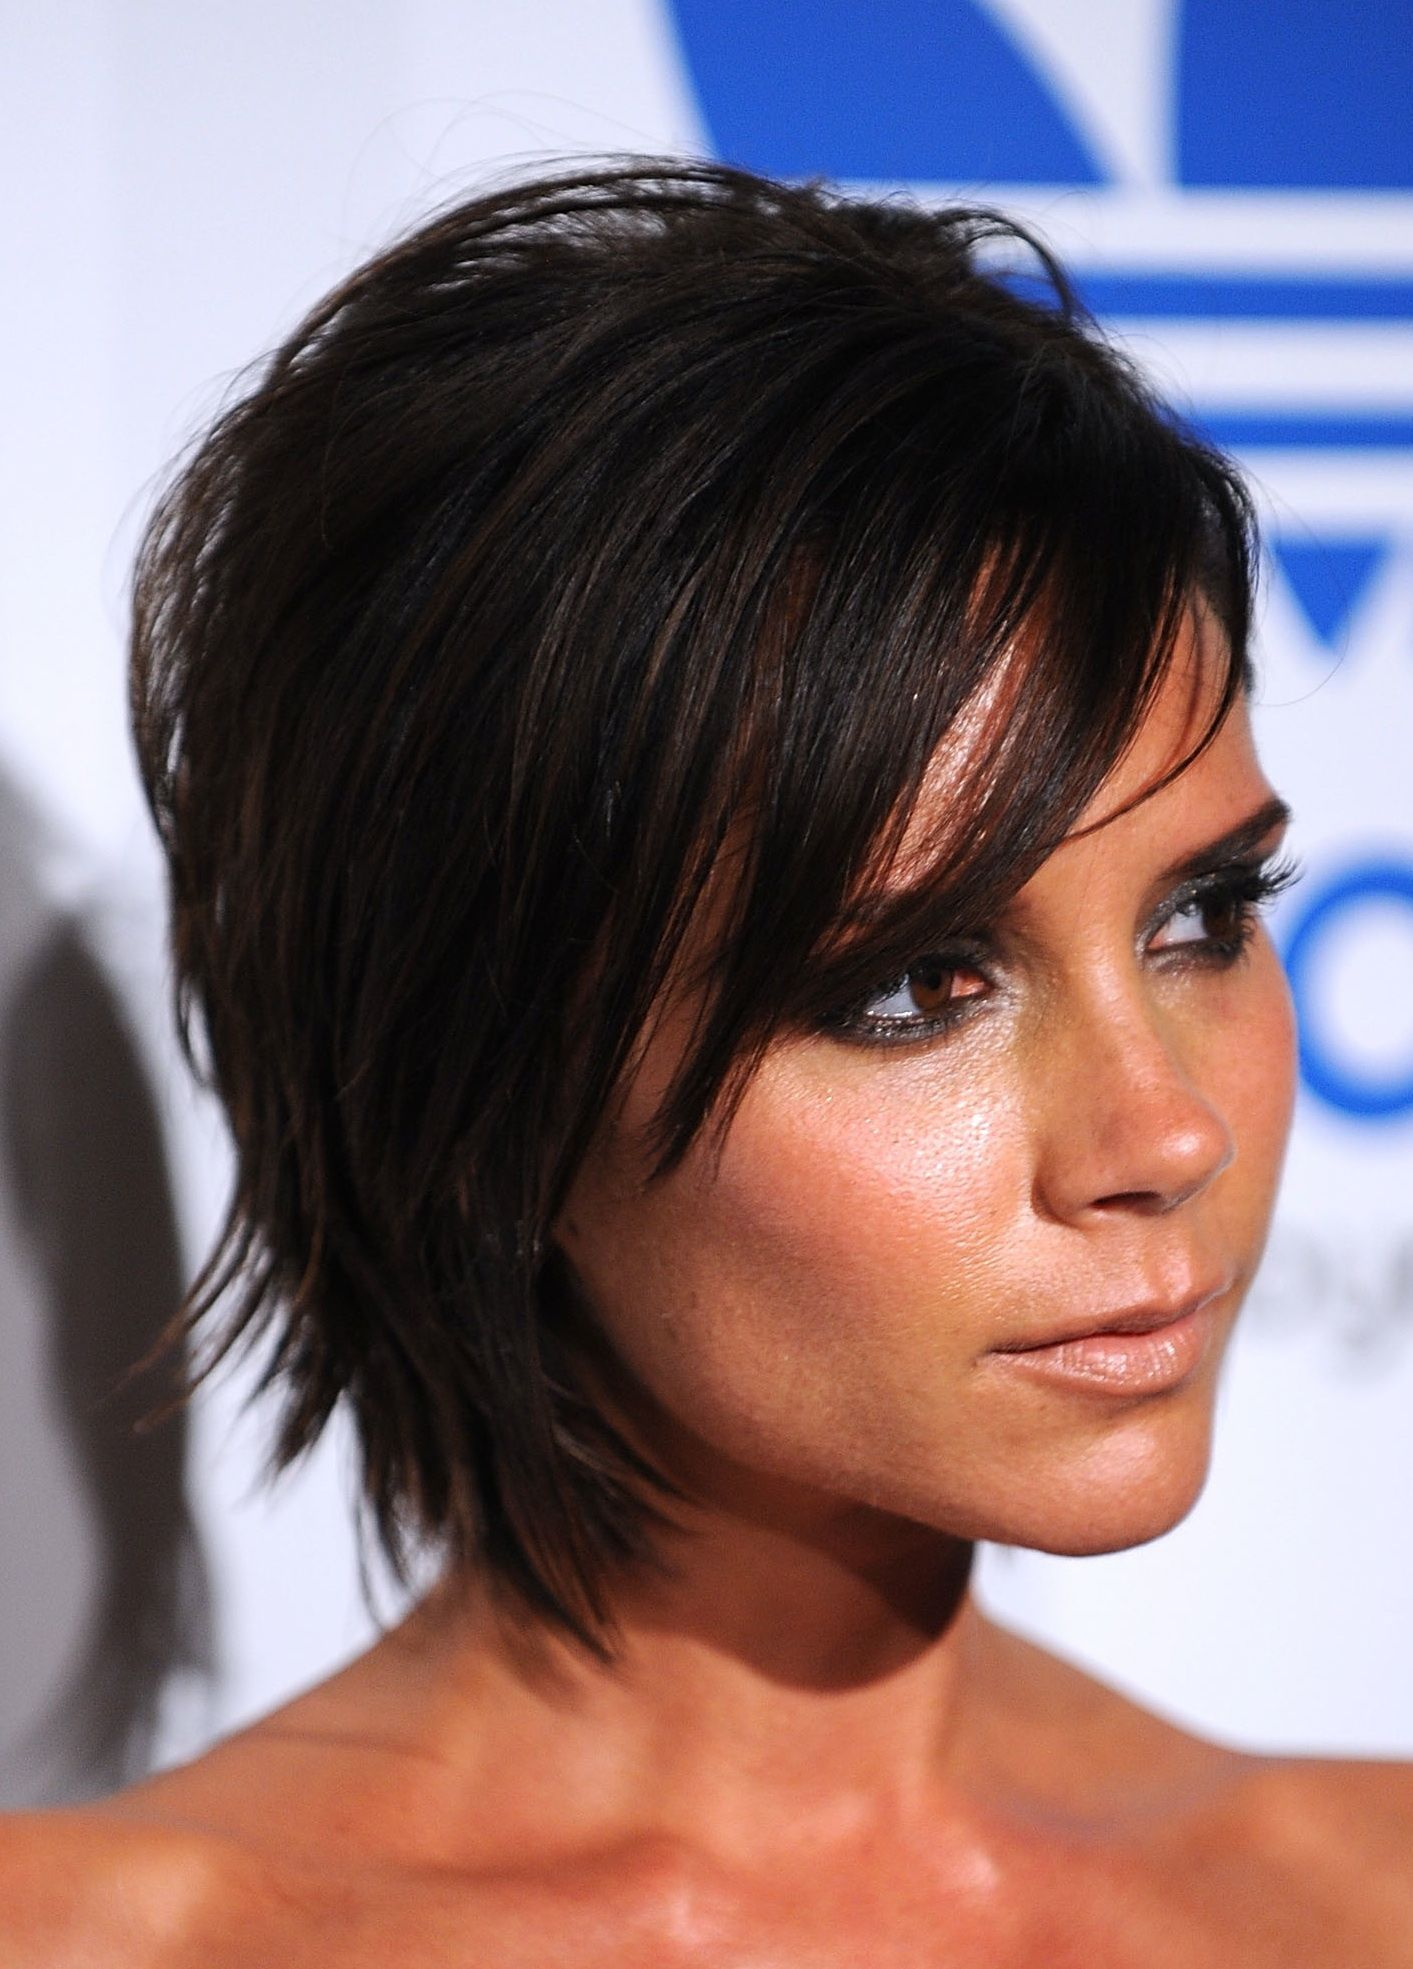 Victoria Beckham Hair Over The Years For Heather Pinterest